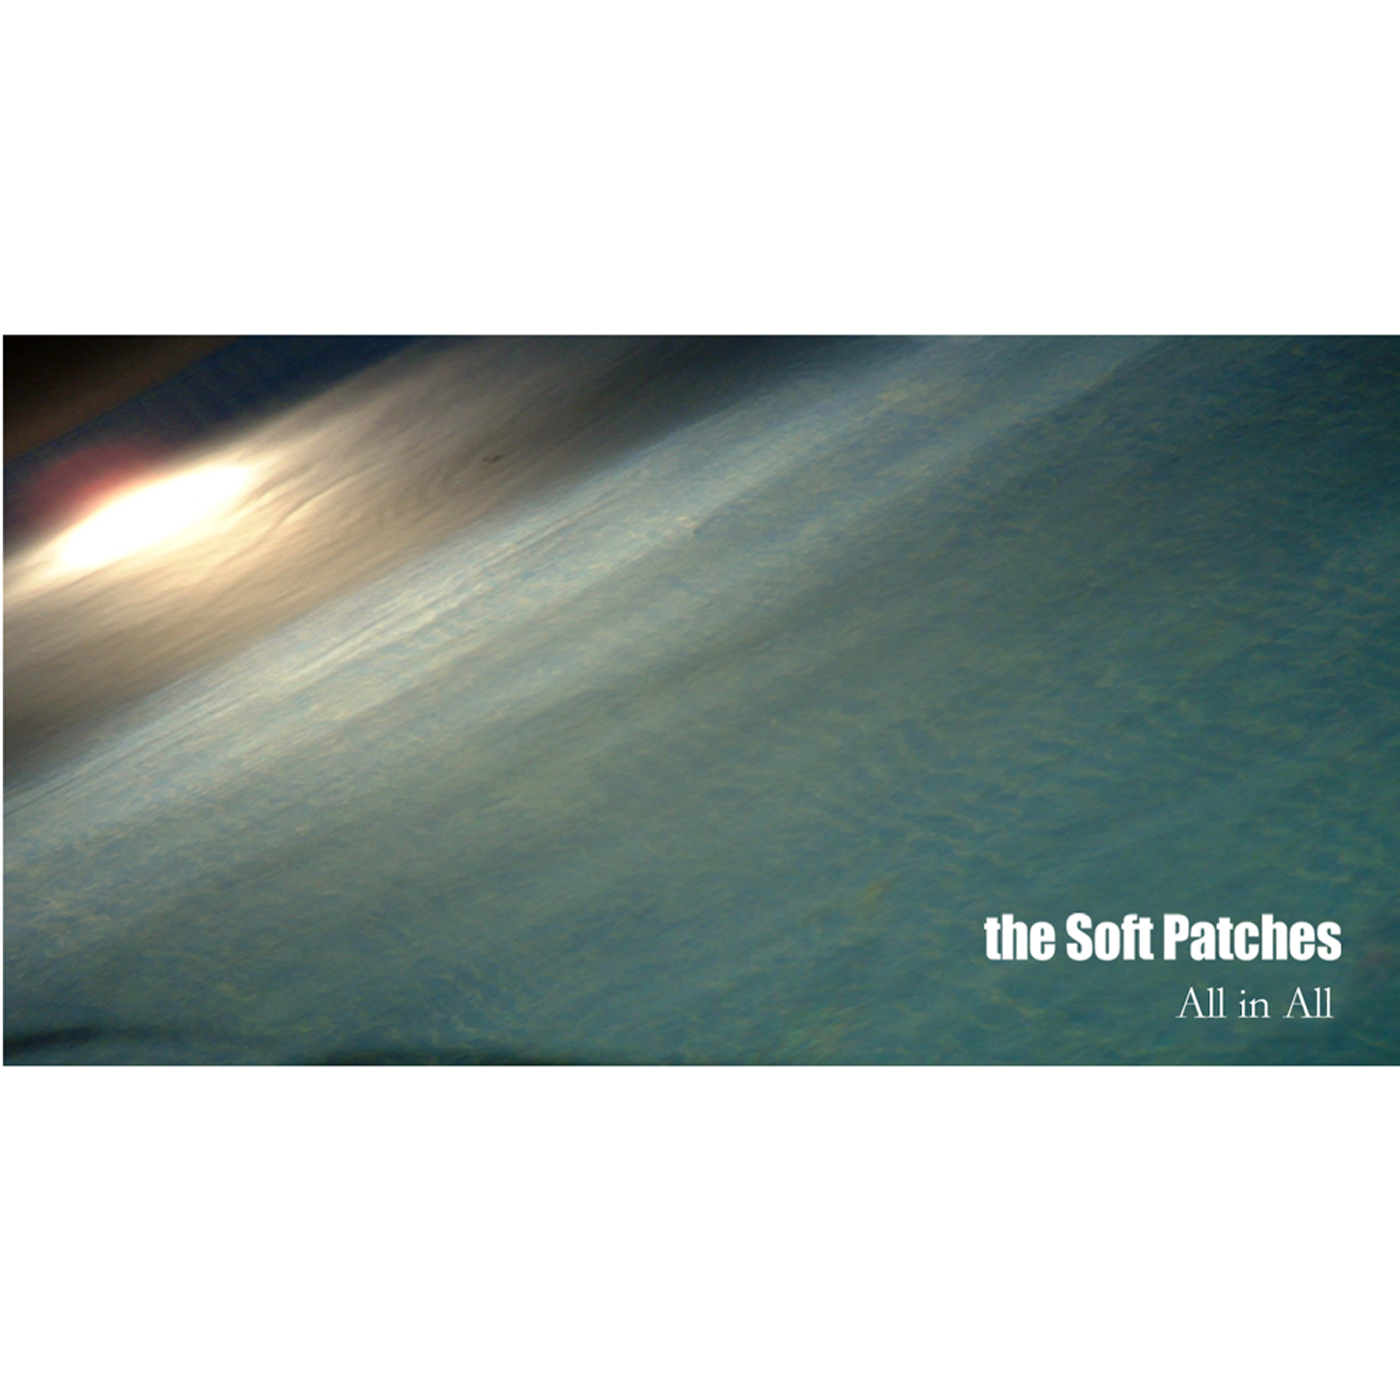 the soft patches